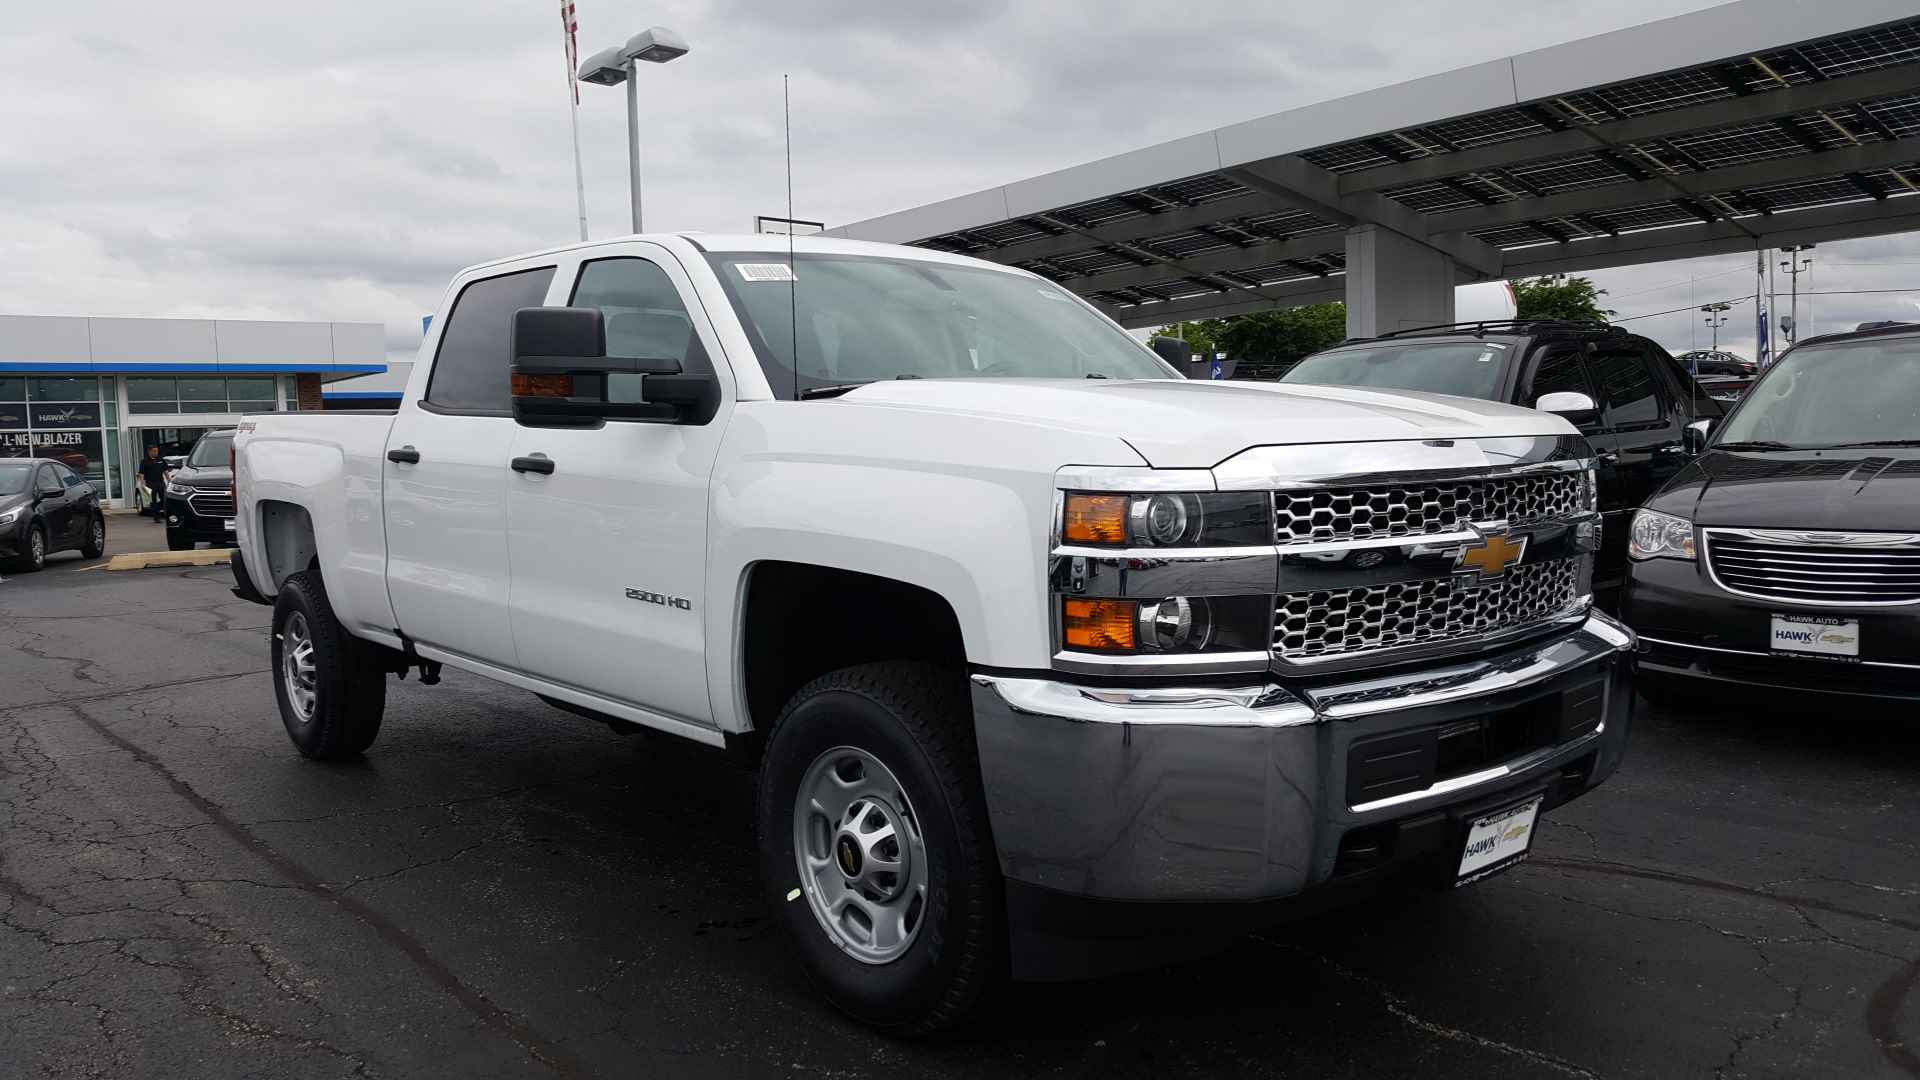 84 The Best 2019 Silverado Hd Price And Review